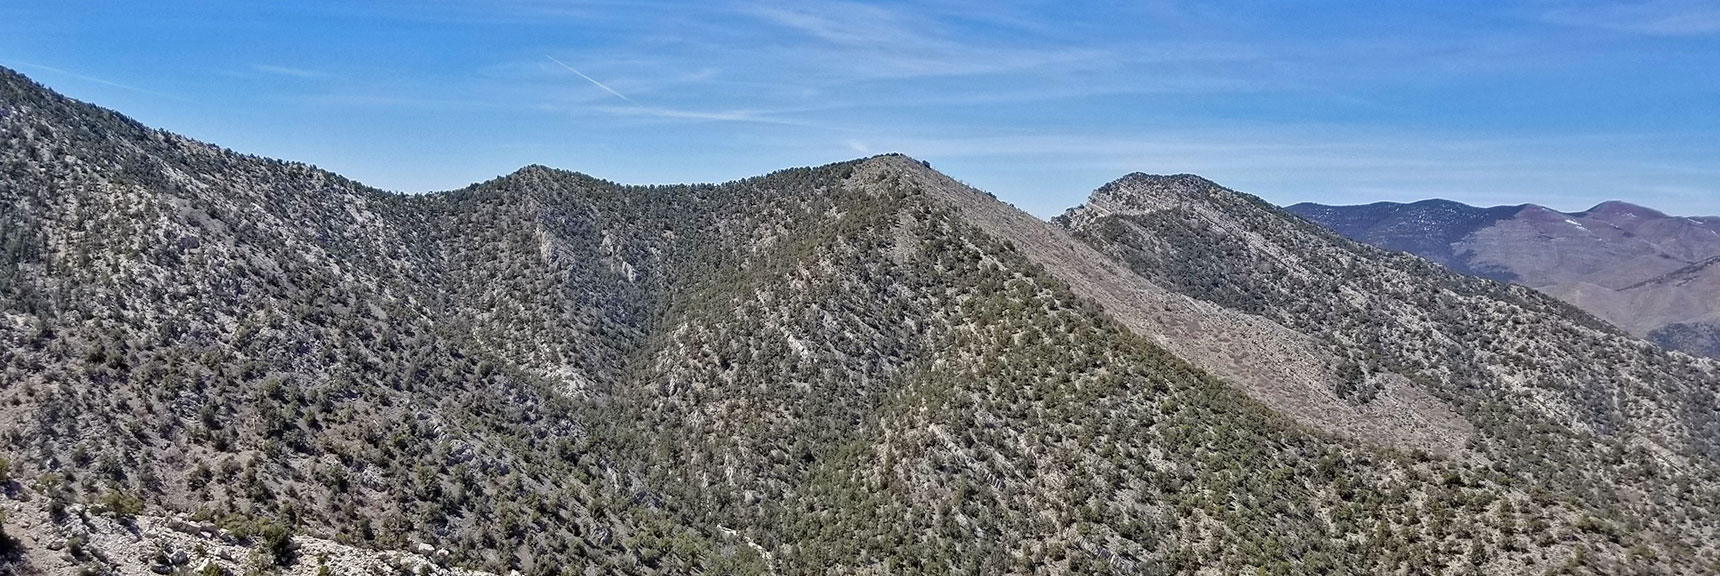 View of El Padre Mountain and Westward Beyond Along Keystone Thrust, Nevada